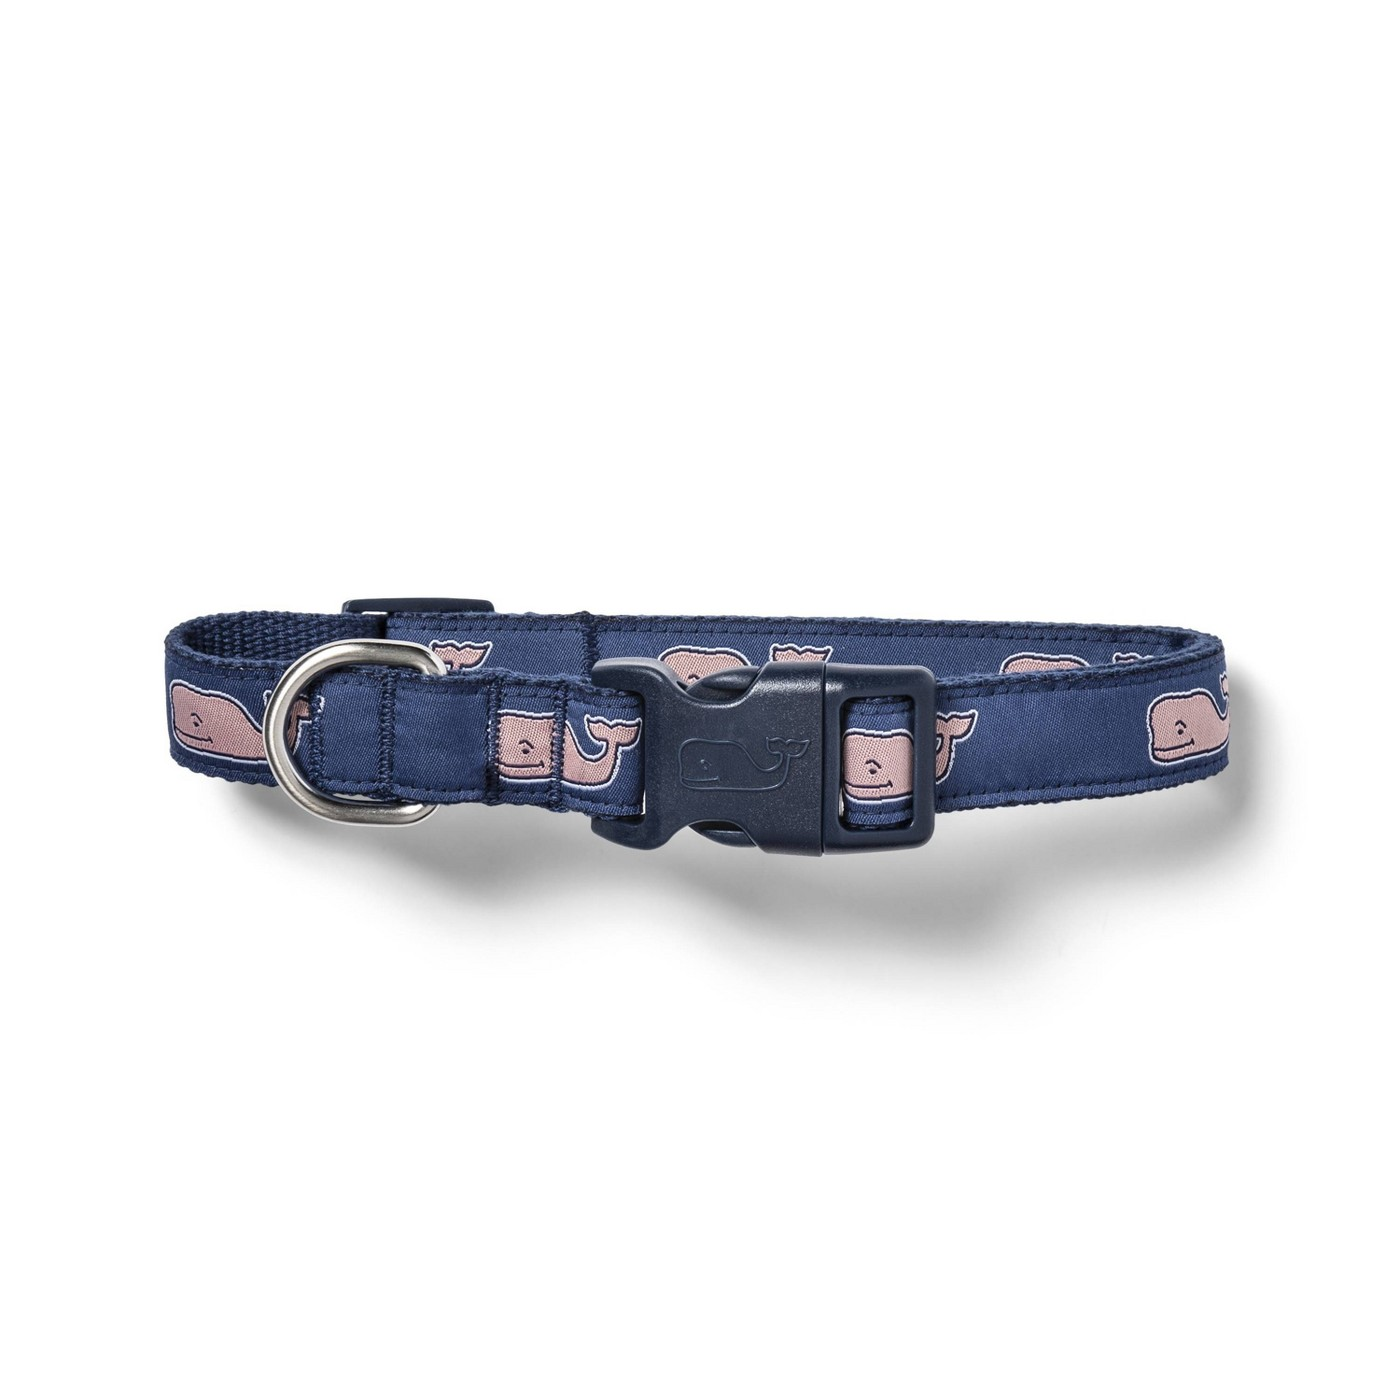 Vineyard Vines Target Dog Collar